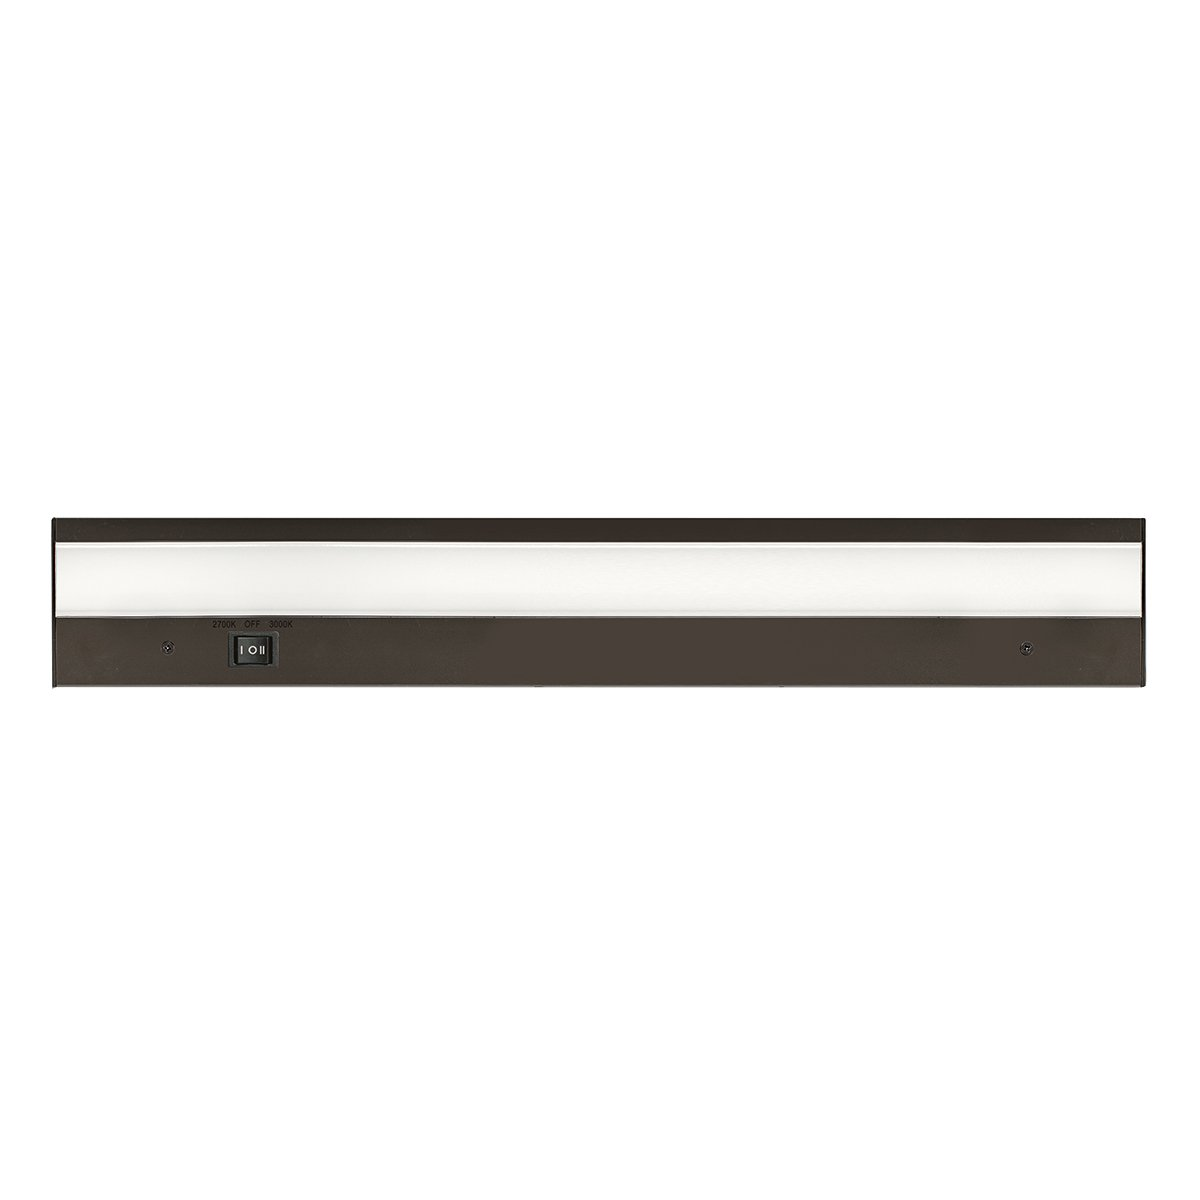 WAC Lighting Duo BA-ACLED18-27/30BZ Acled Dual Color Option Bar Finish 2700K and 3000K, 18 Inches, Bronze by WAC Lighting